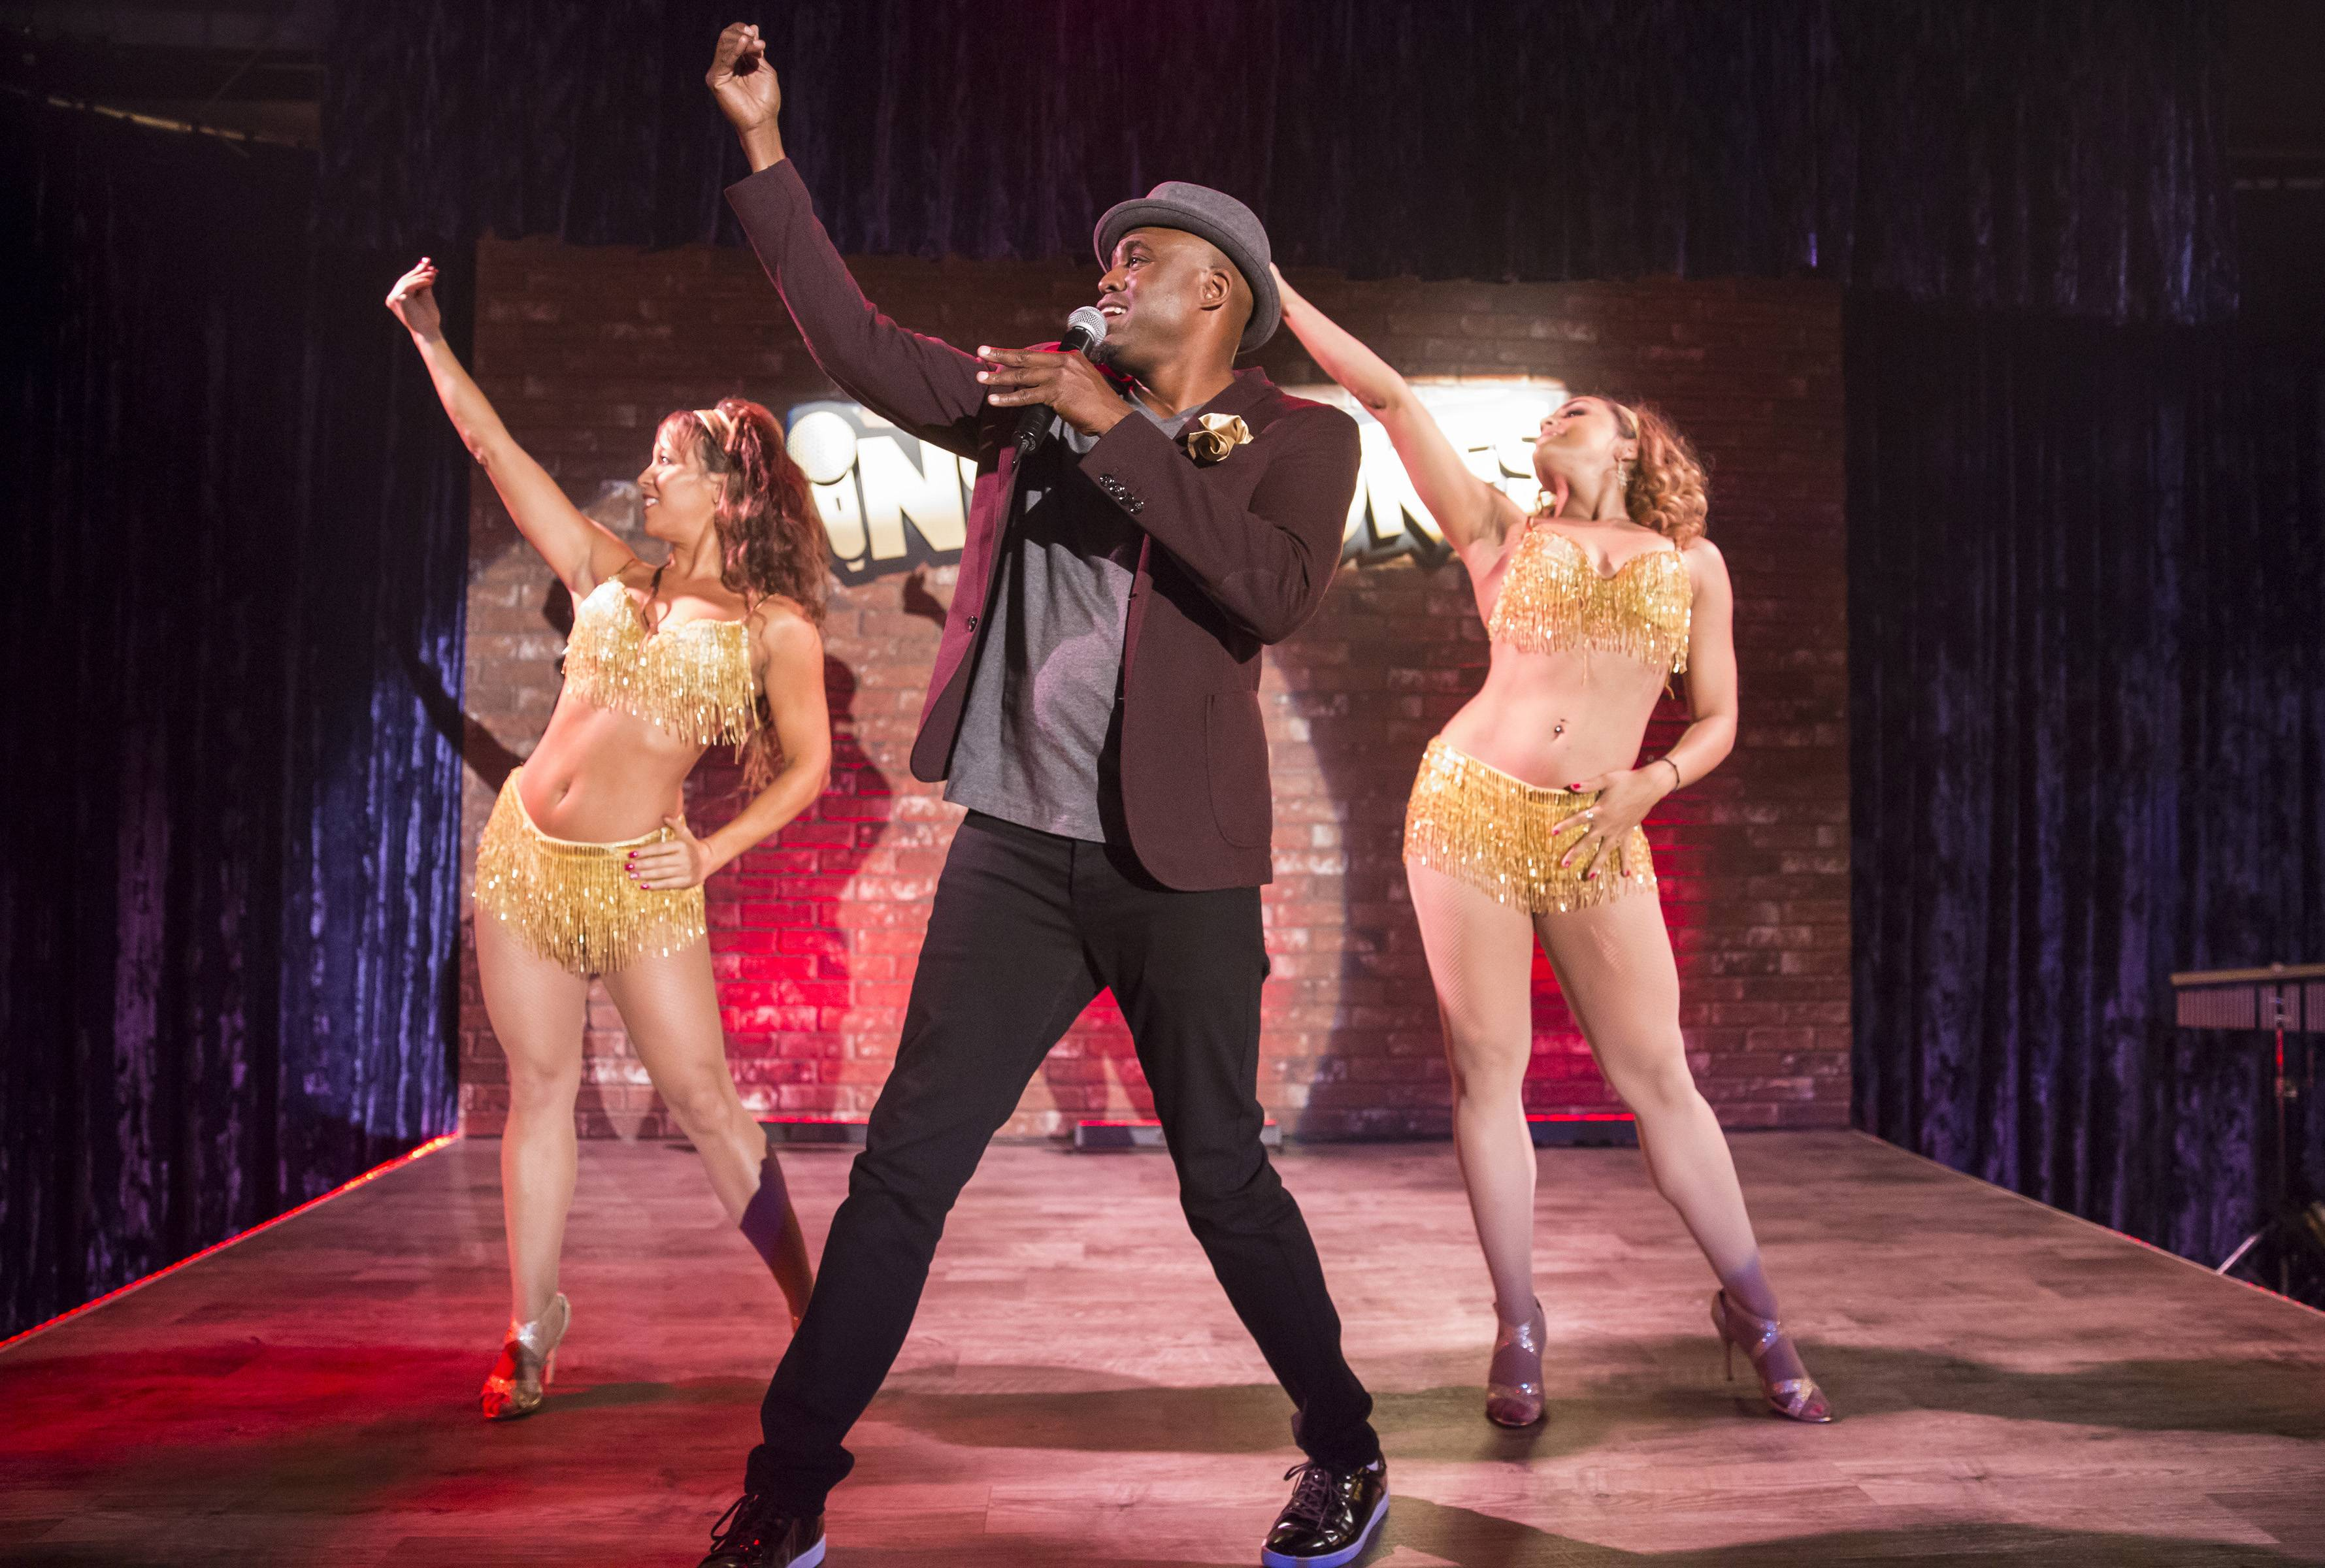 Clearly he's still fighting to play Sammy Davis Jr. - (Photo: BET)